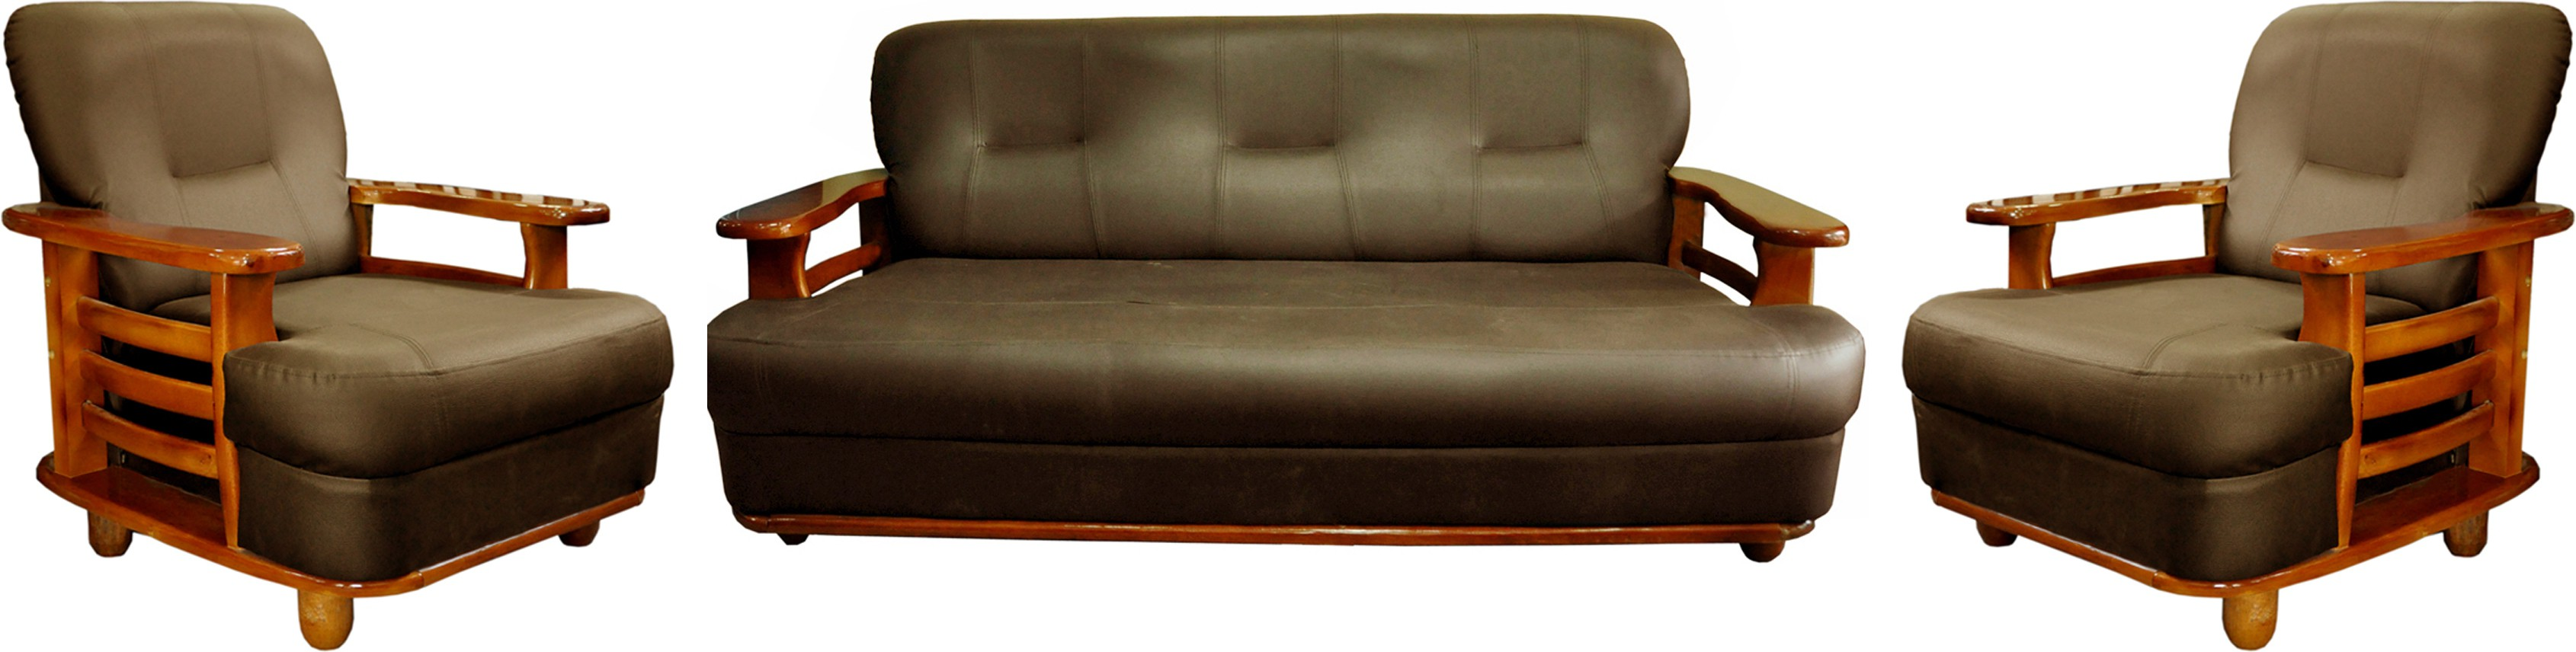 Sofa Set Offers In Mumbai Knight Industry Leatherette 3 1 1 Walnut Brown Sofa Set